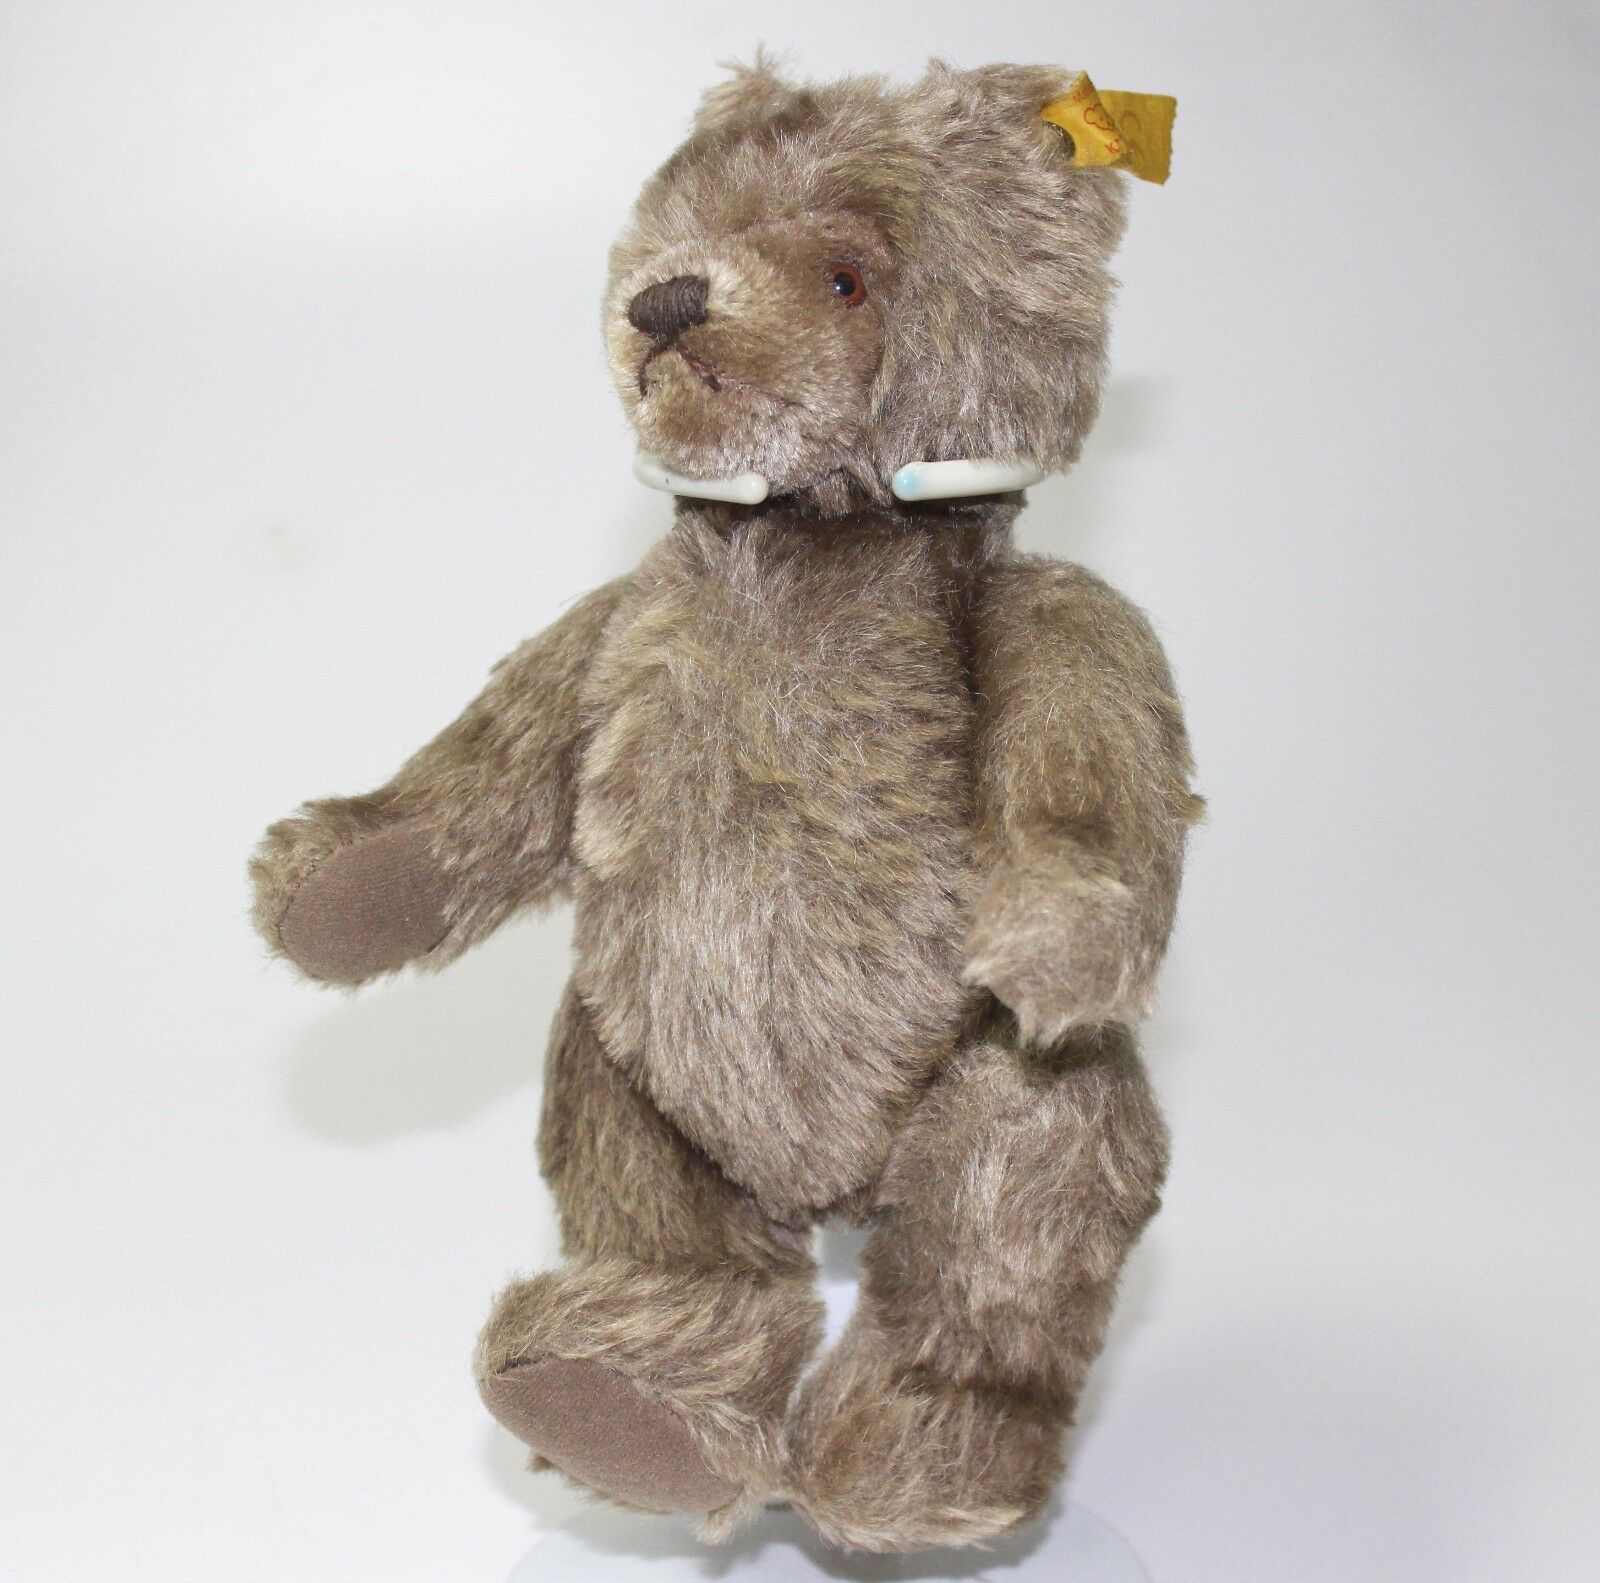 VTG STEIFF TEDDY JOINTED Marrone BEAR PLUSH TOY GERMAN  BUTTON EAR 22 CM 0202/26